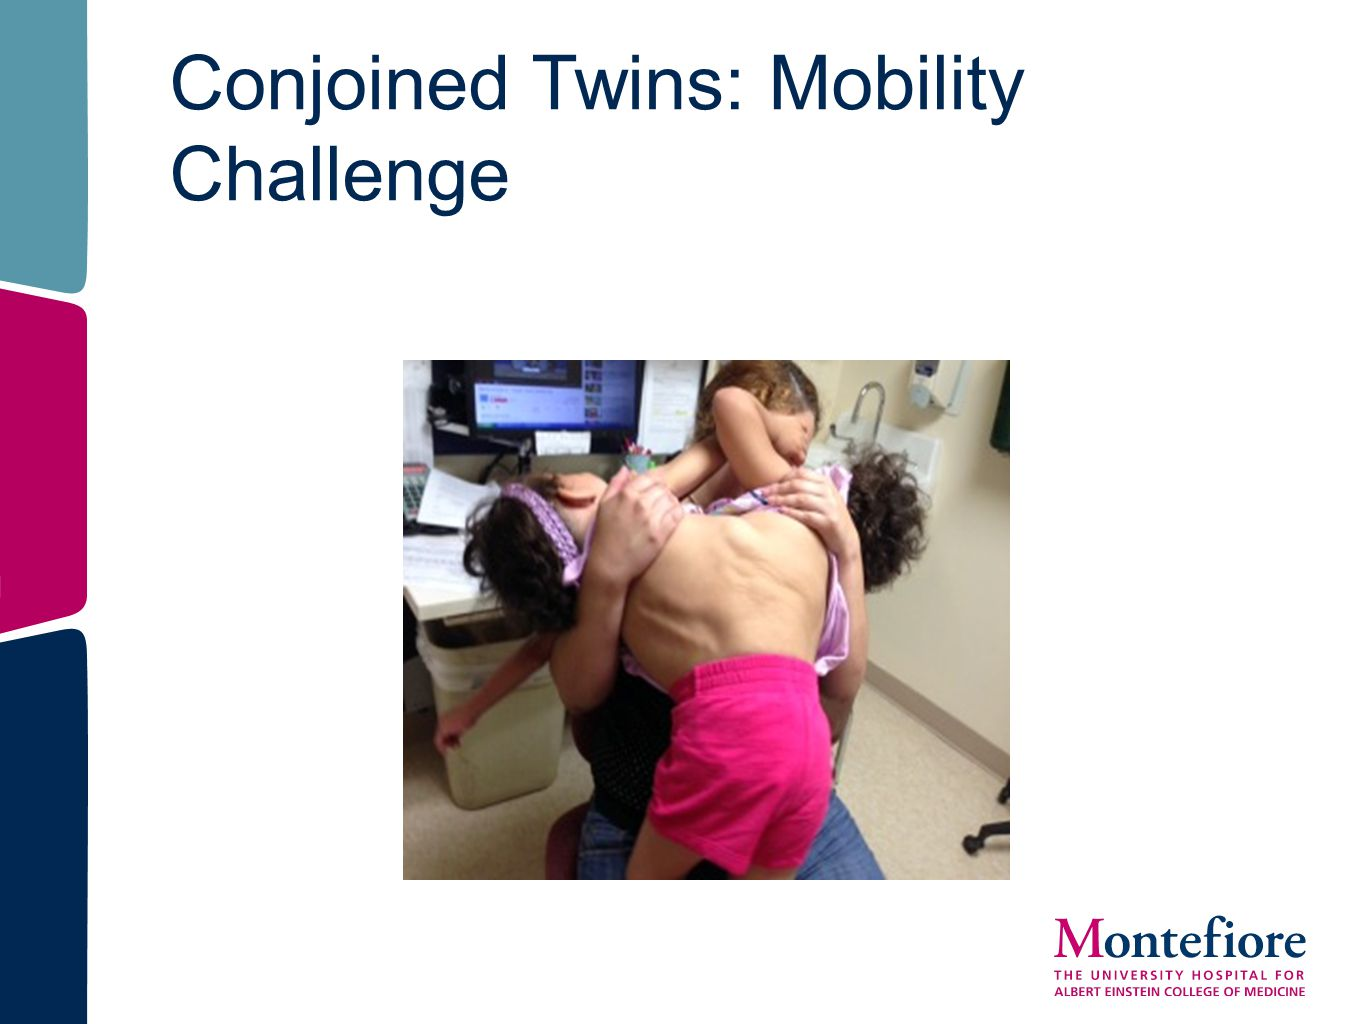 Conjoined Twins: Mobility Challenge